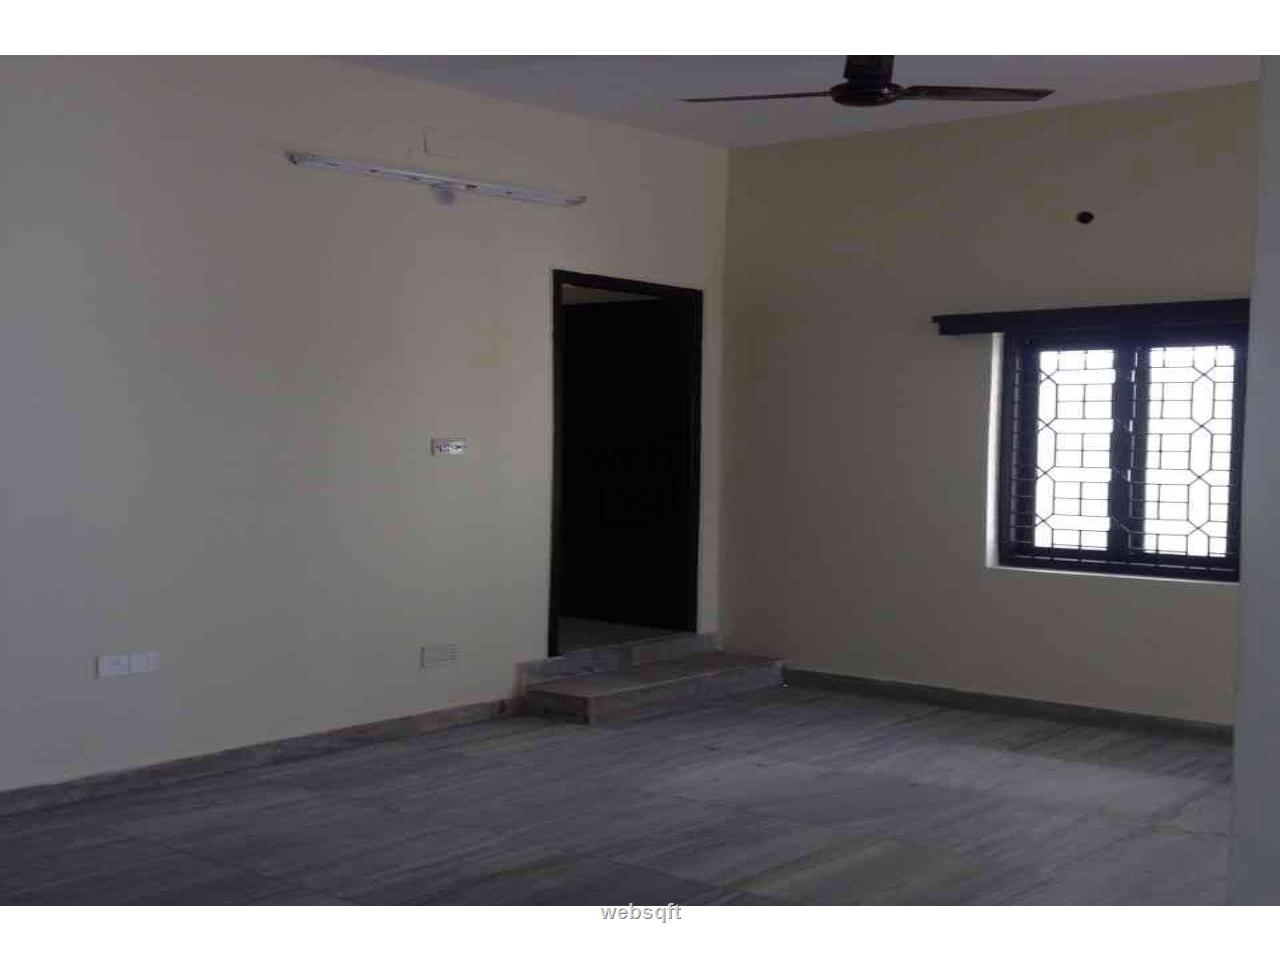 Websqft - Residential Duplex House - Property for Sale - in 2650Sq-ft/Banjara Hills at Rs 27560000